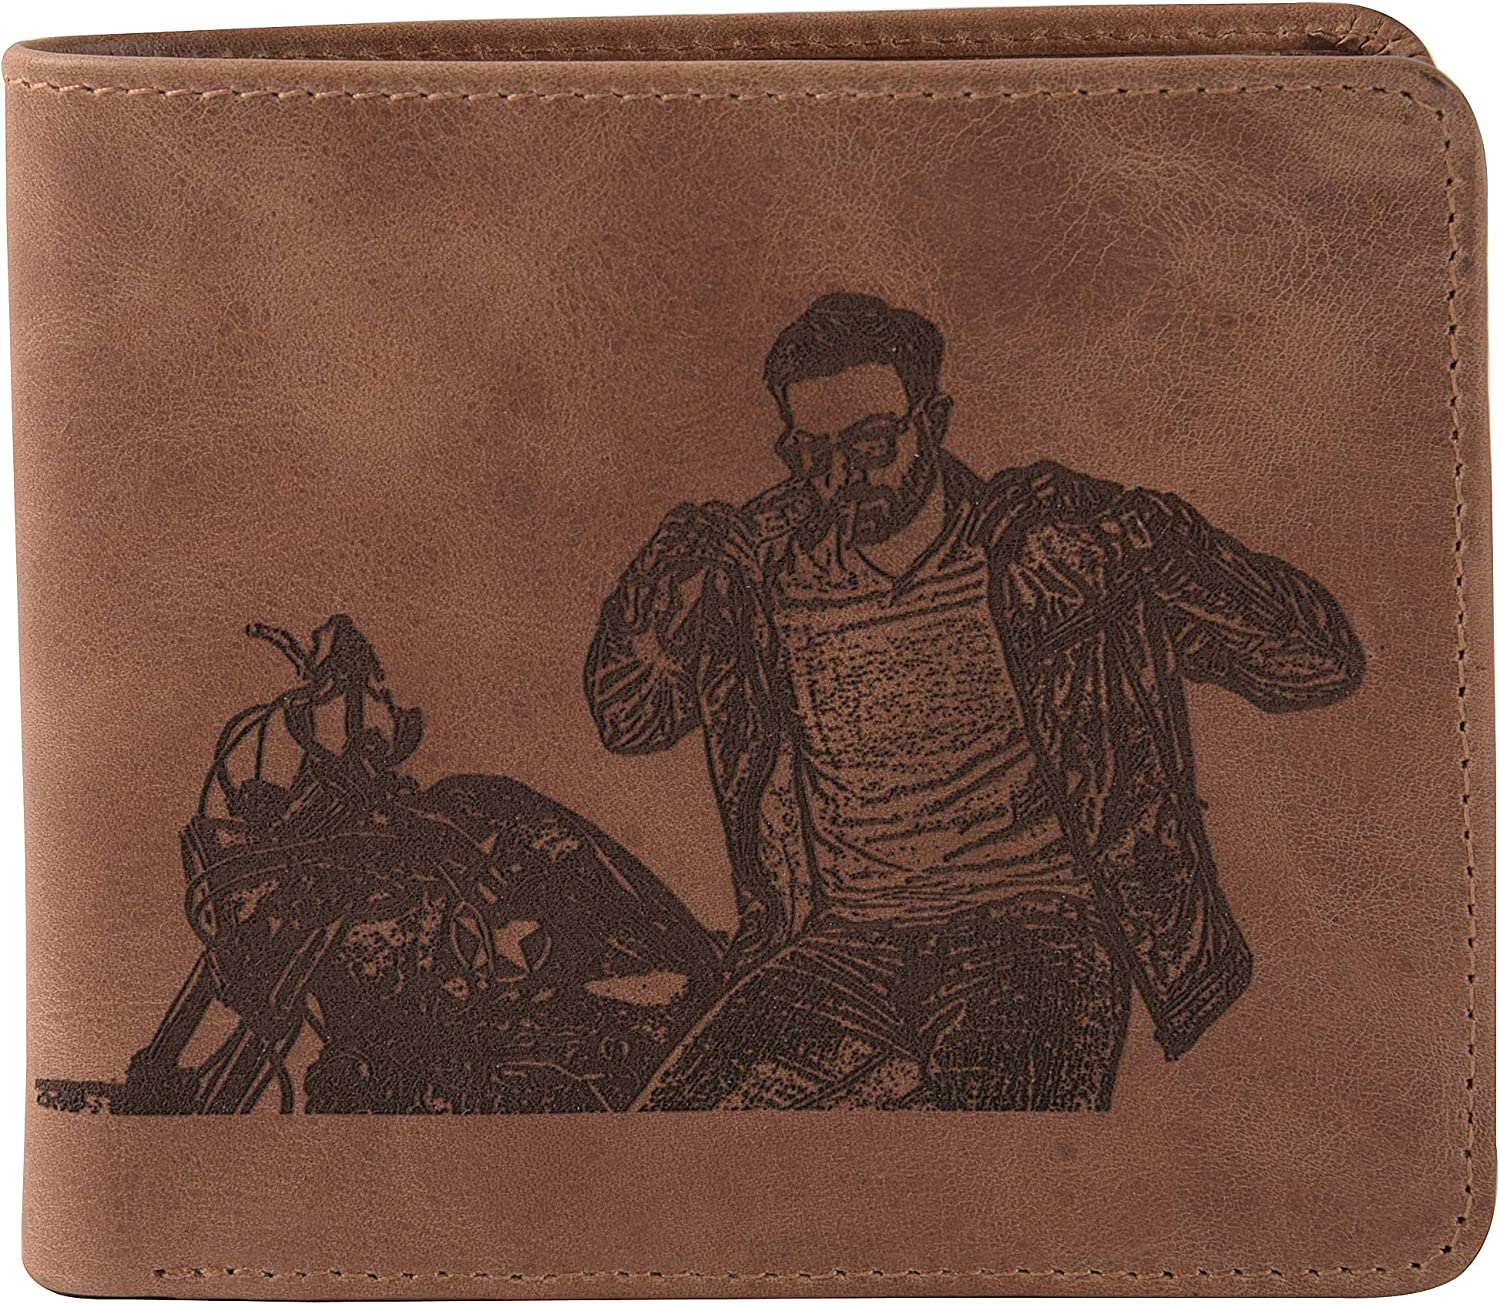 Customized Engraved Leather Wallet, Design your own wallet engrave photo on leather wallet RFID protected, Bifold Wallet, Multi Slots , Personalized Photo ,Brown colour